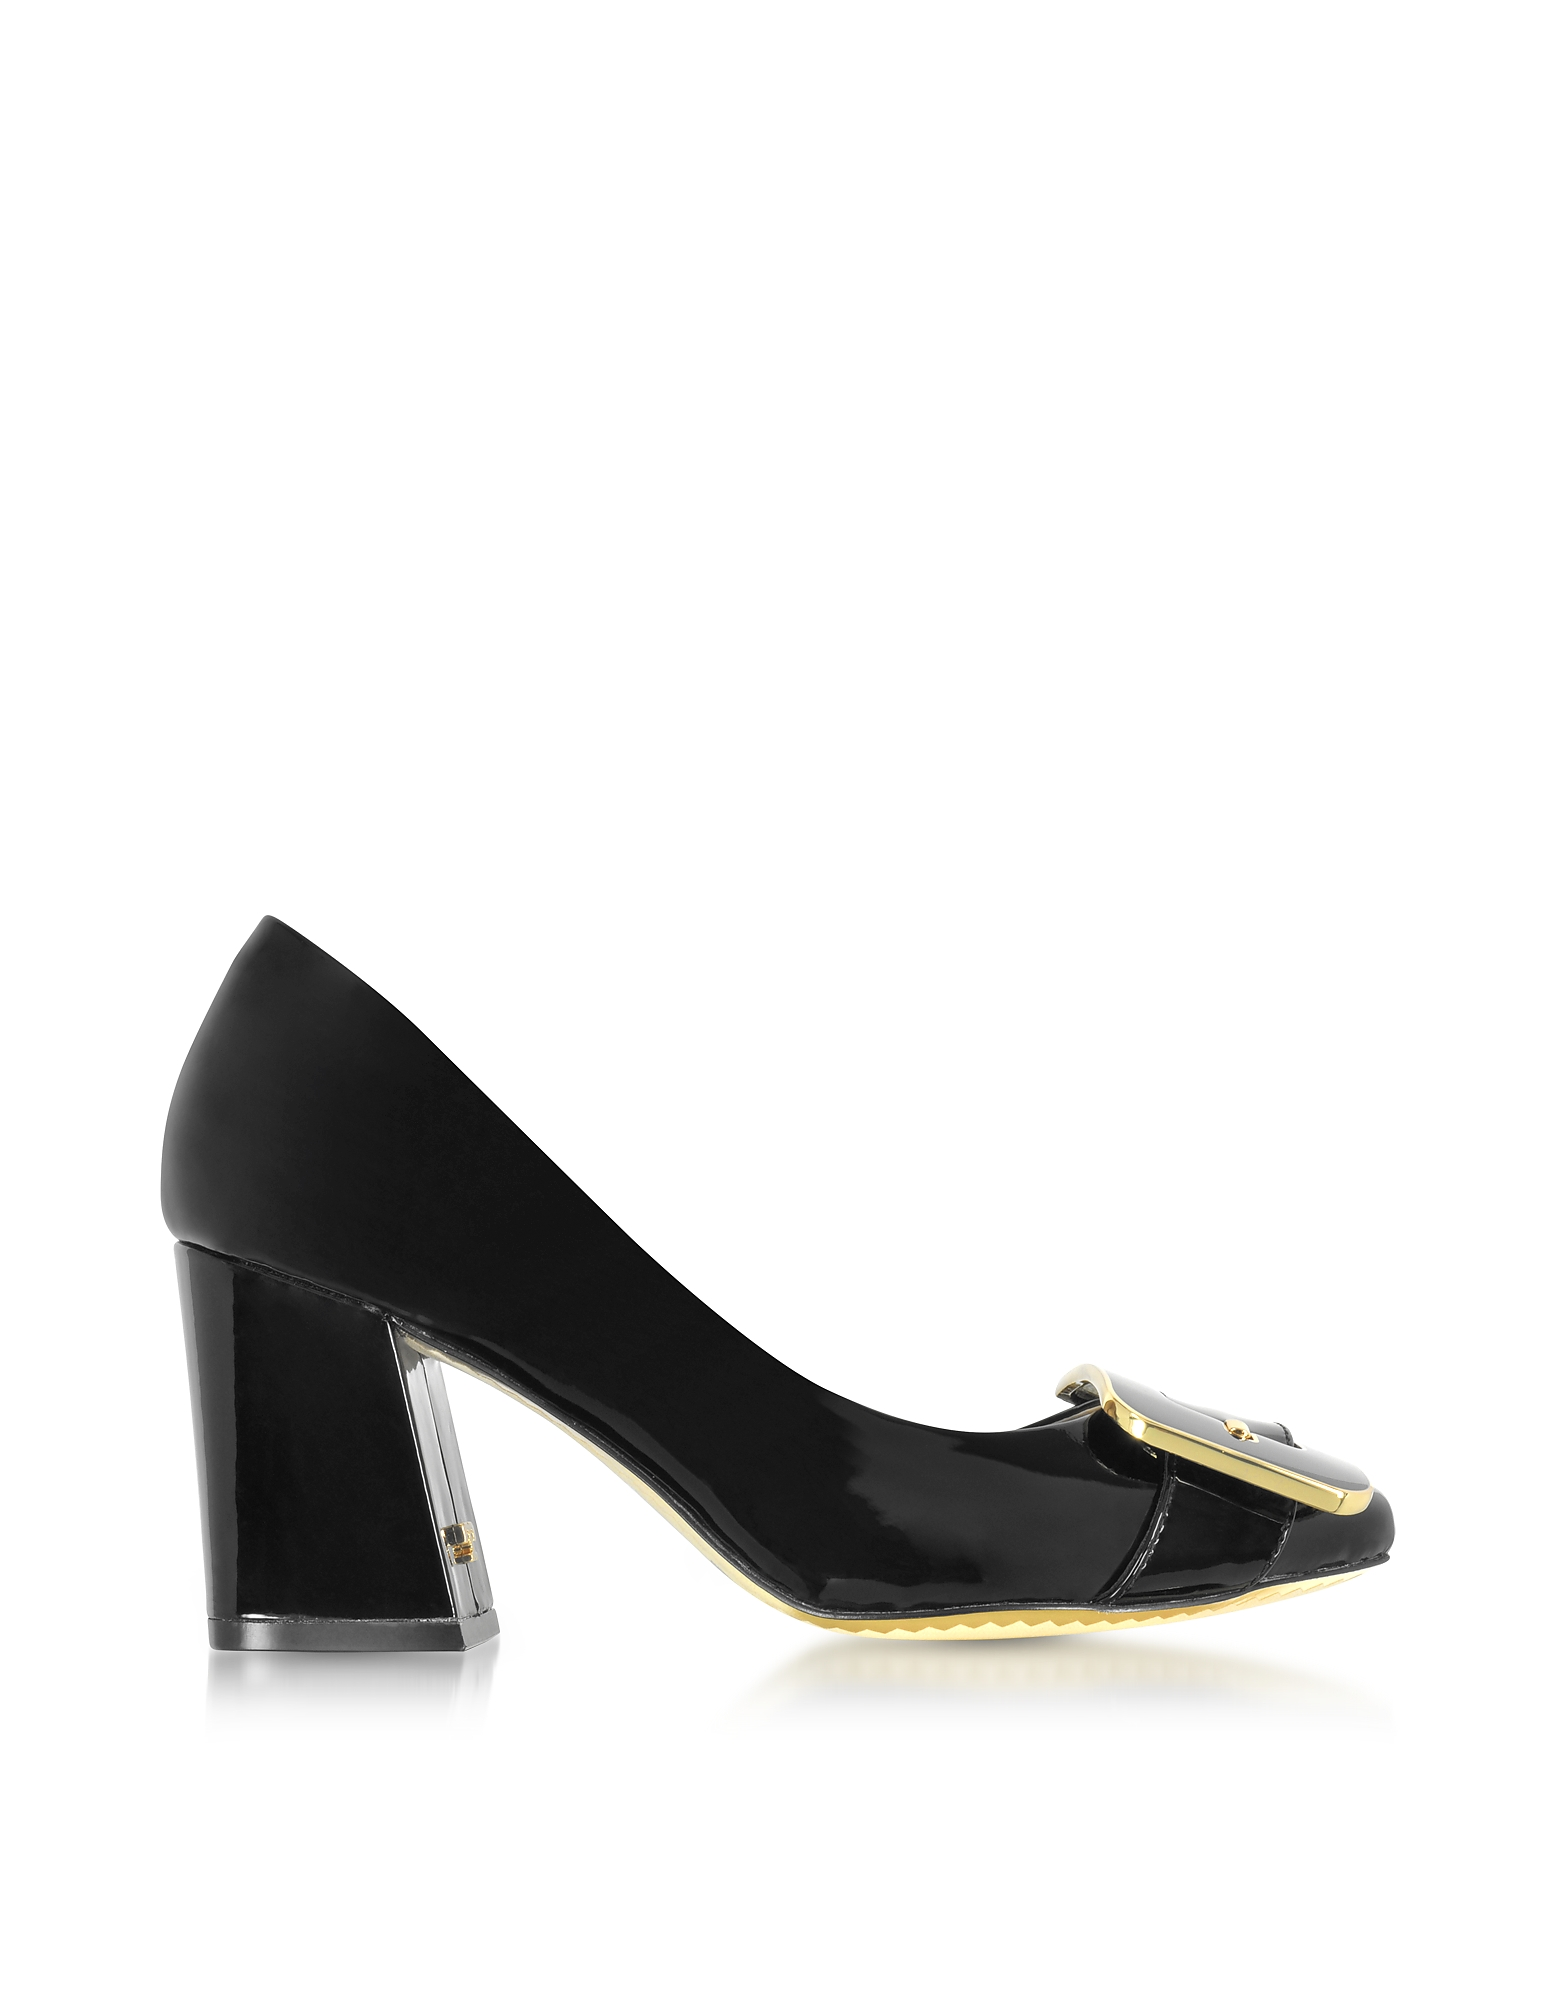 Tory Burch Shoes, Maria Black Patent Leather Heel Pumps